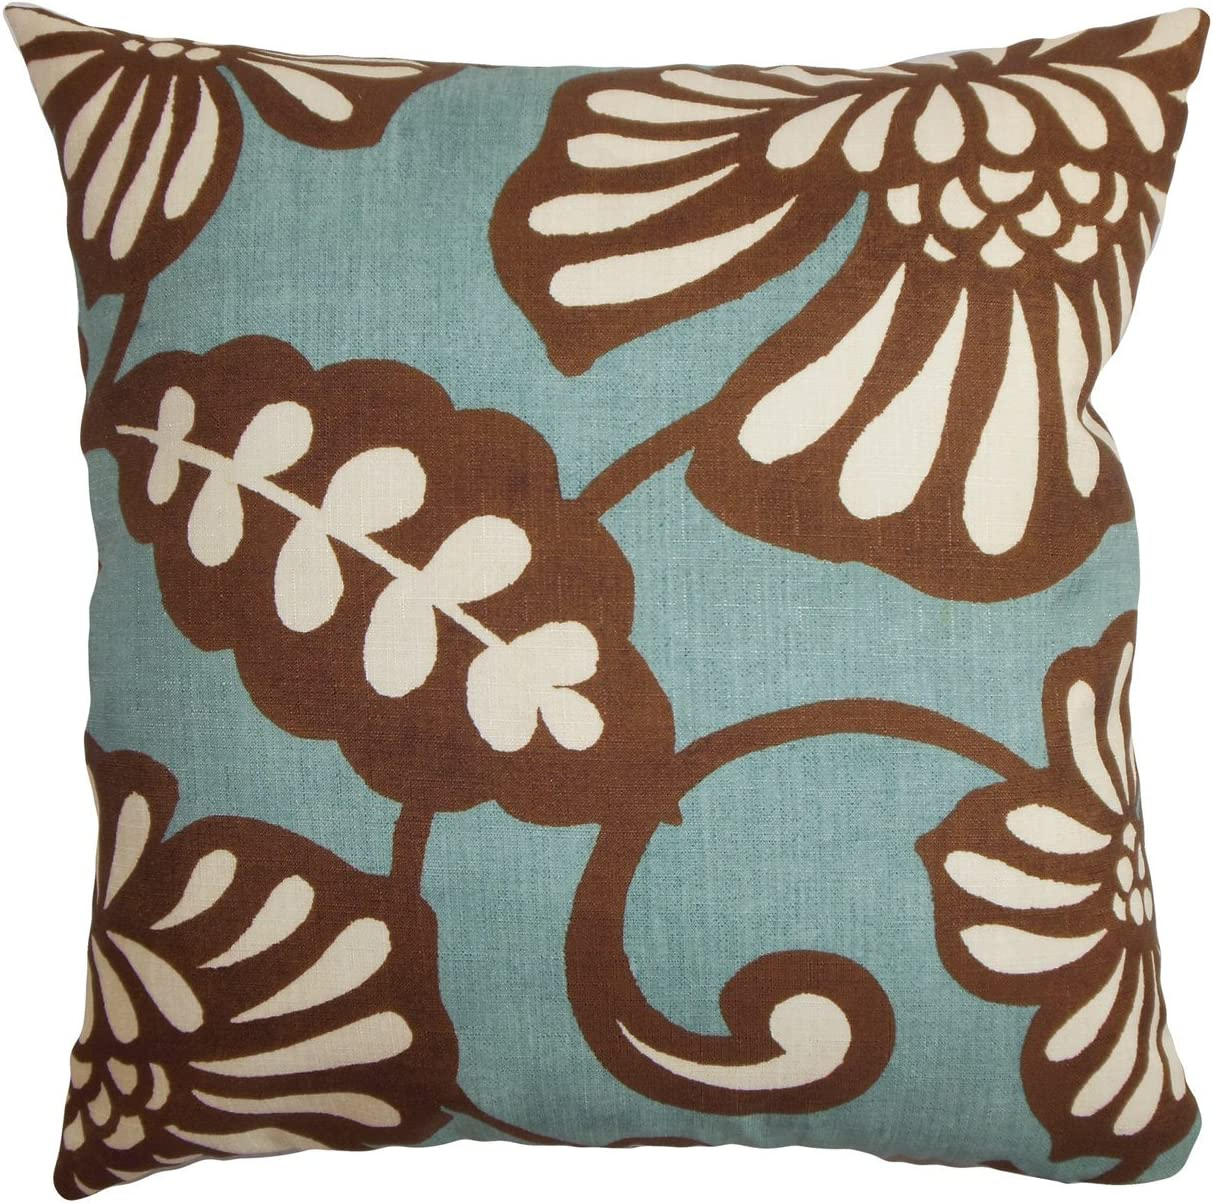 The Pillow Collection Talin Floral Throw Pillow Cover